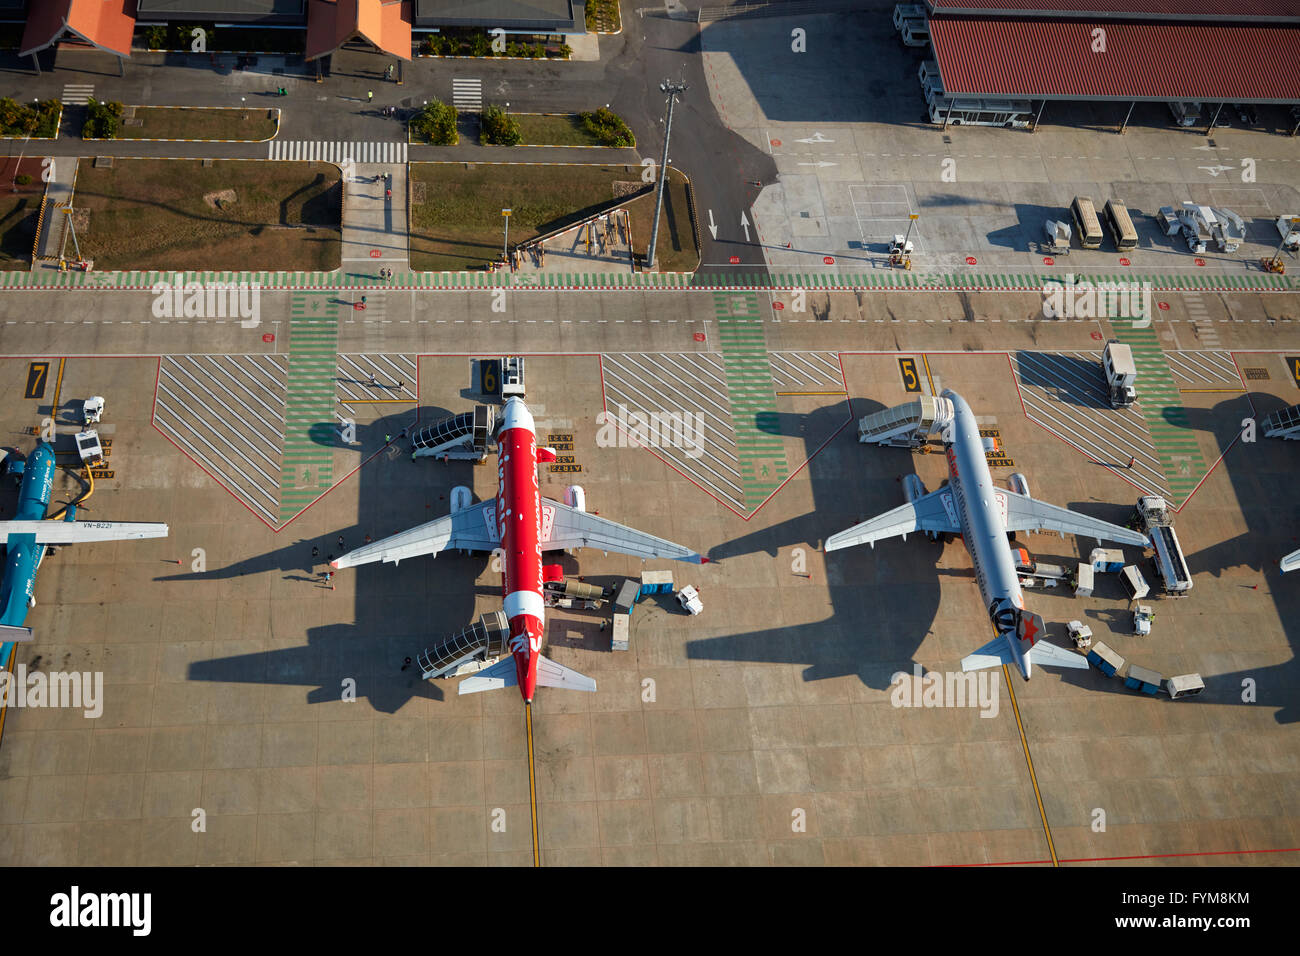 Jets at Siem Reap International Airport, Siem Reap, Cambodia - aerial - Stock Image